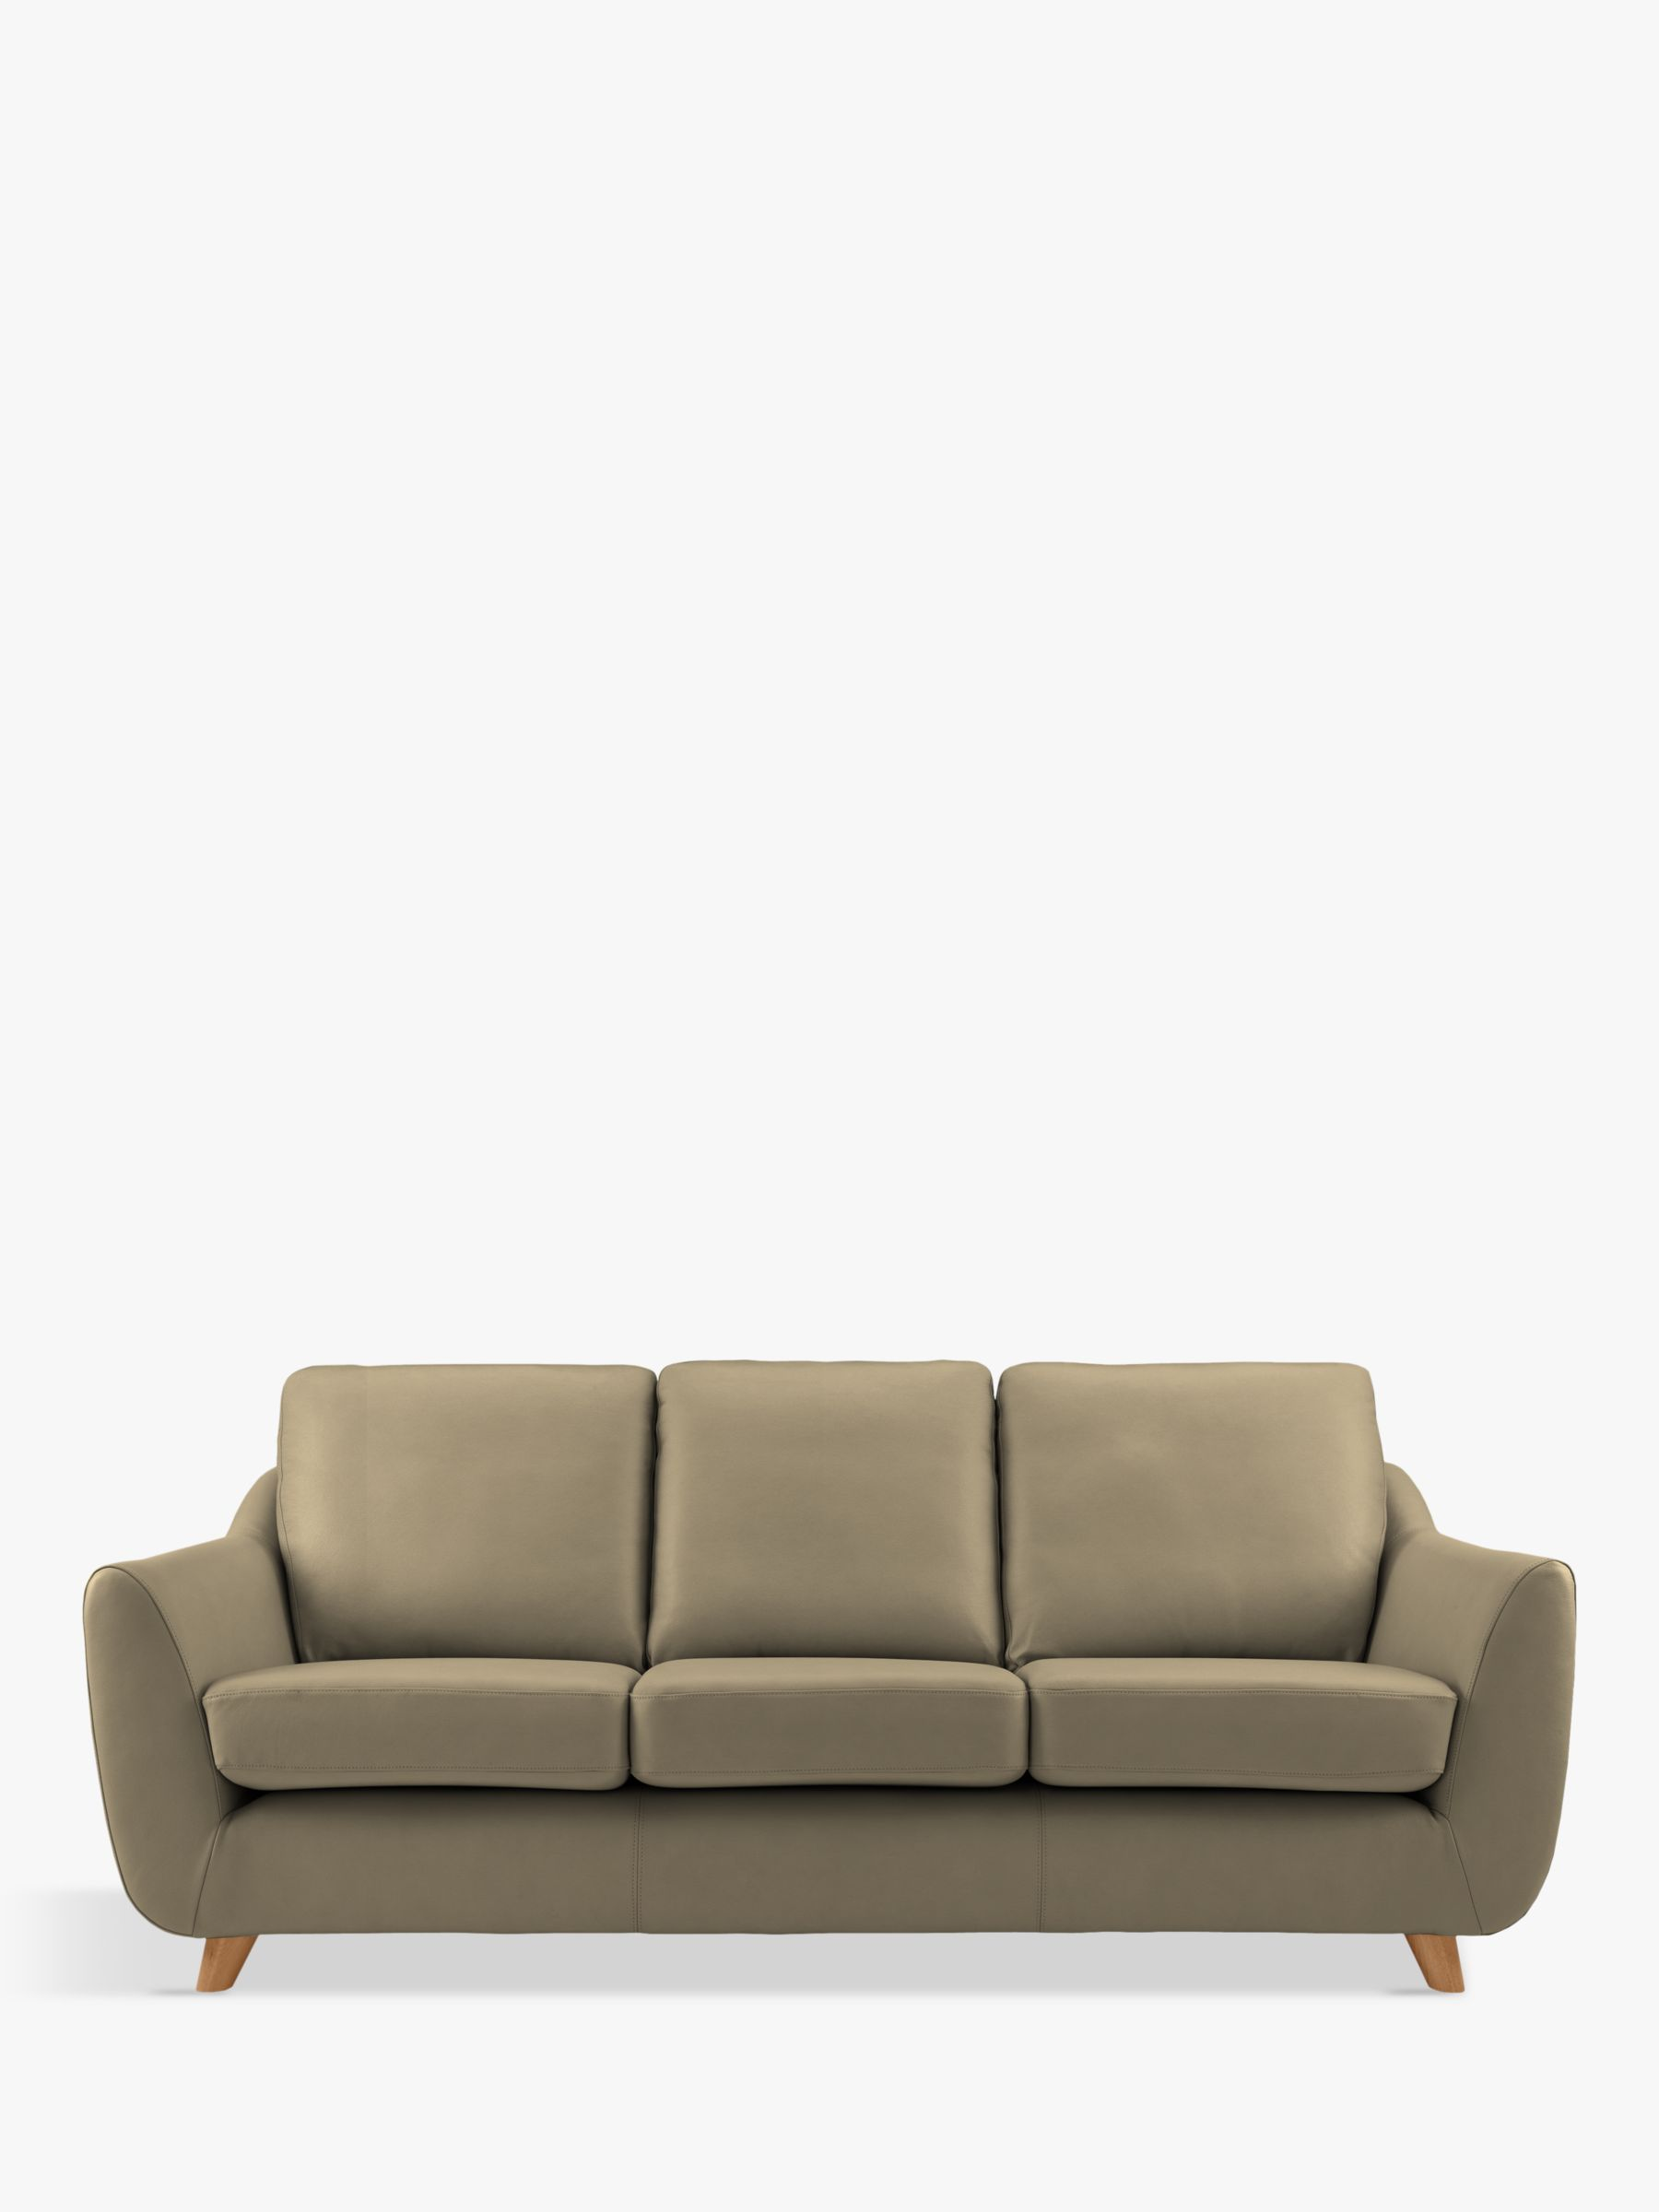 G Plan Vintage G Plan Vintage The Sixty Seven Large 3 Seater Leather Sofa